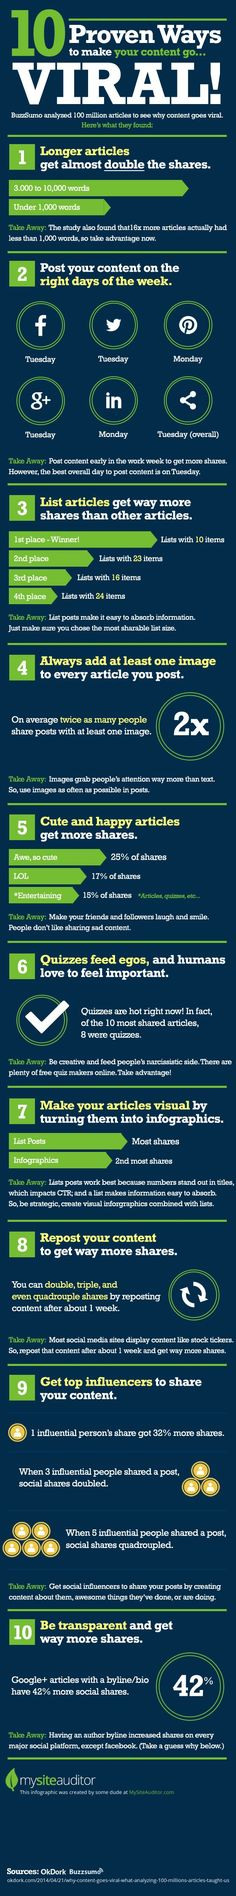 What Are 10 Ways To Help Your Content Go Viral? #infographic #social #media http://www.mervedinger.com